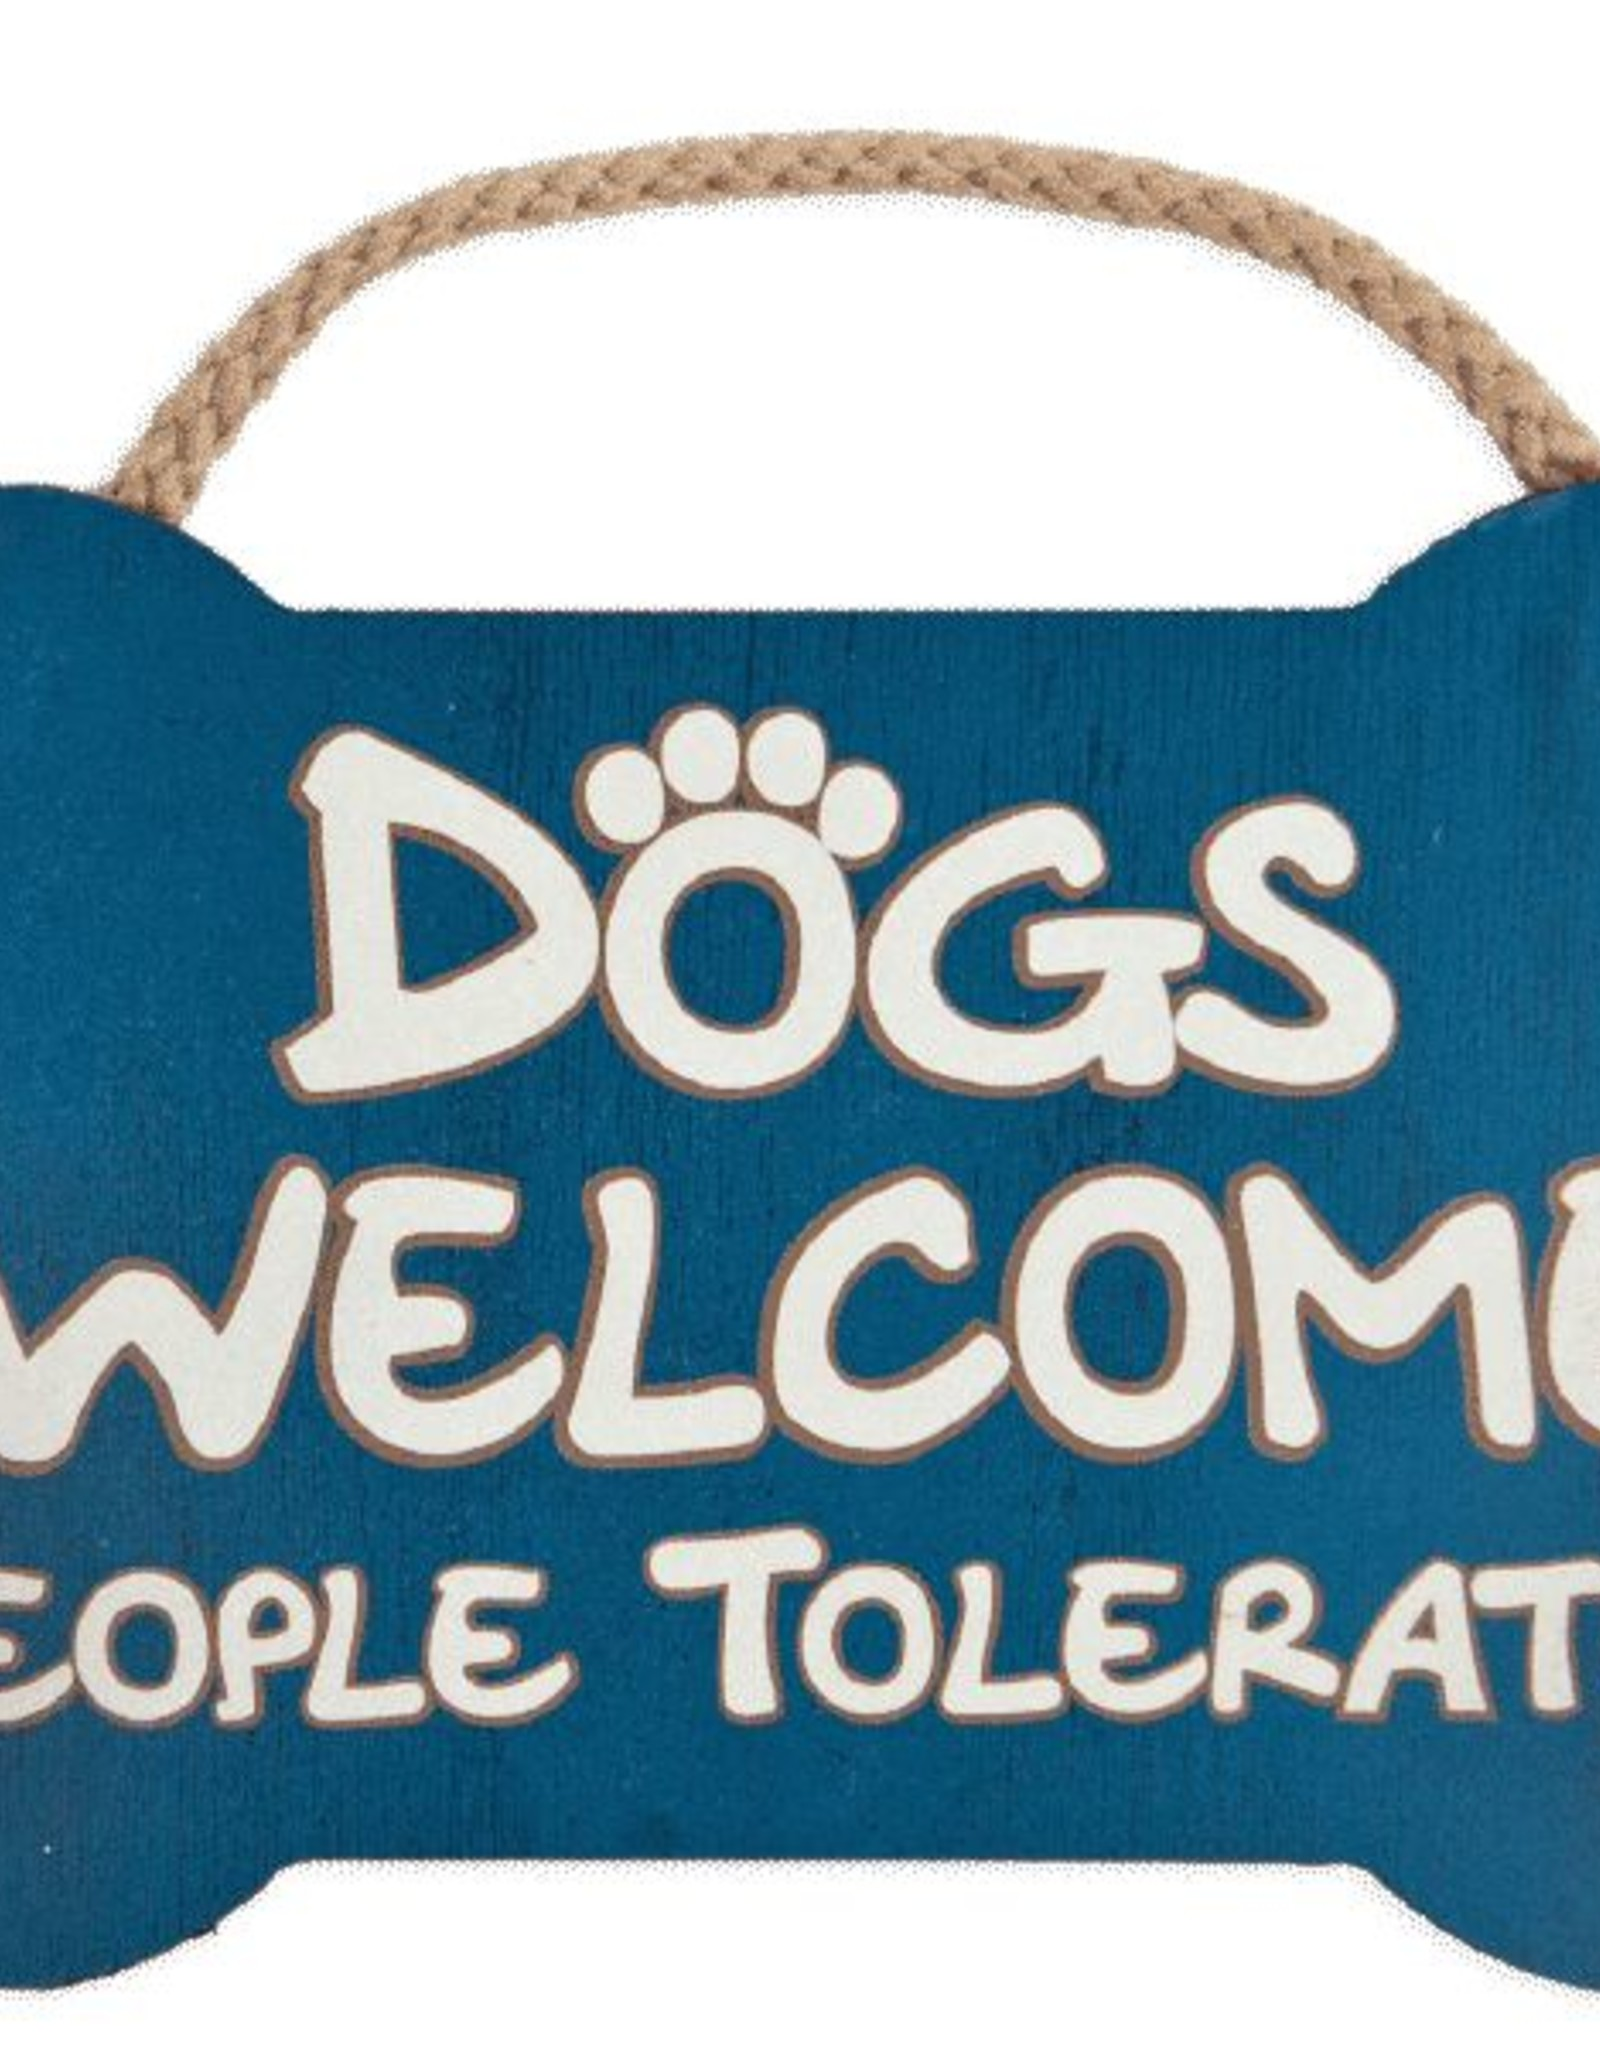 Dog Speak Dog Speak Rope Hanging Sign - Dogs Welcome, People Tolerated